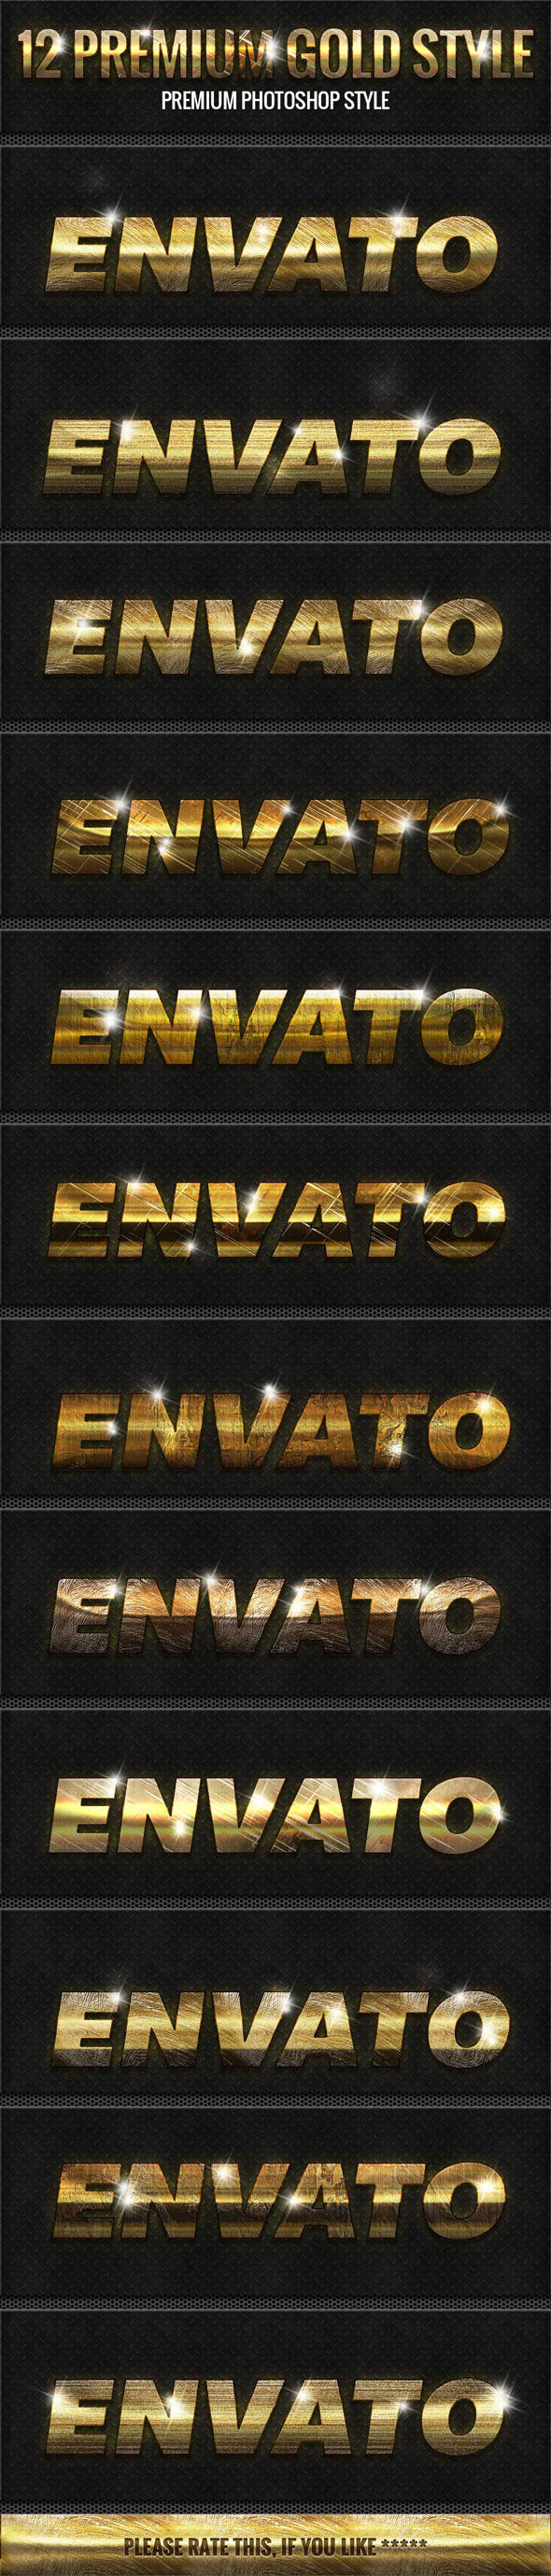 12 New Gold Style - Text Effects Styles